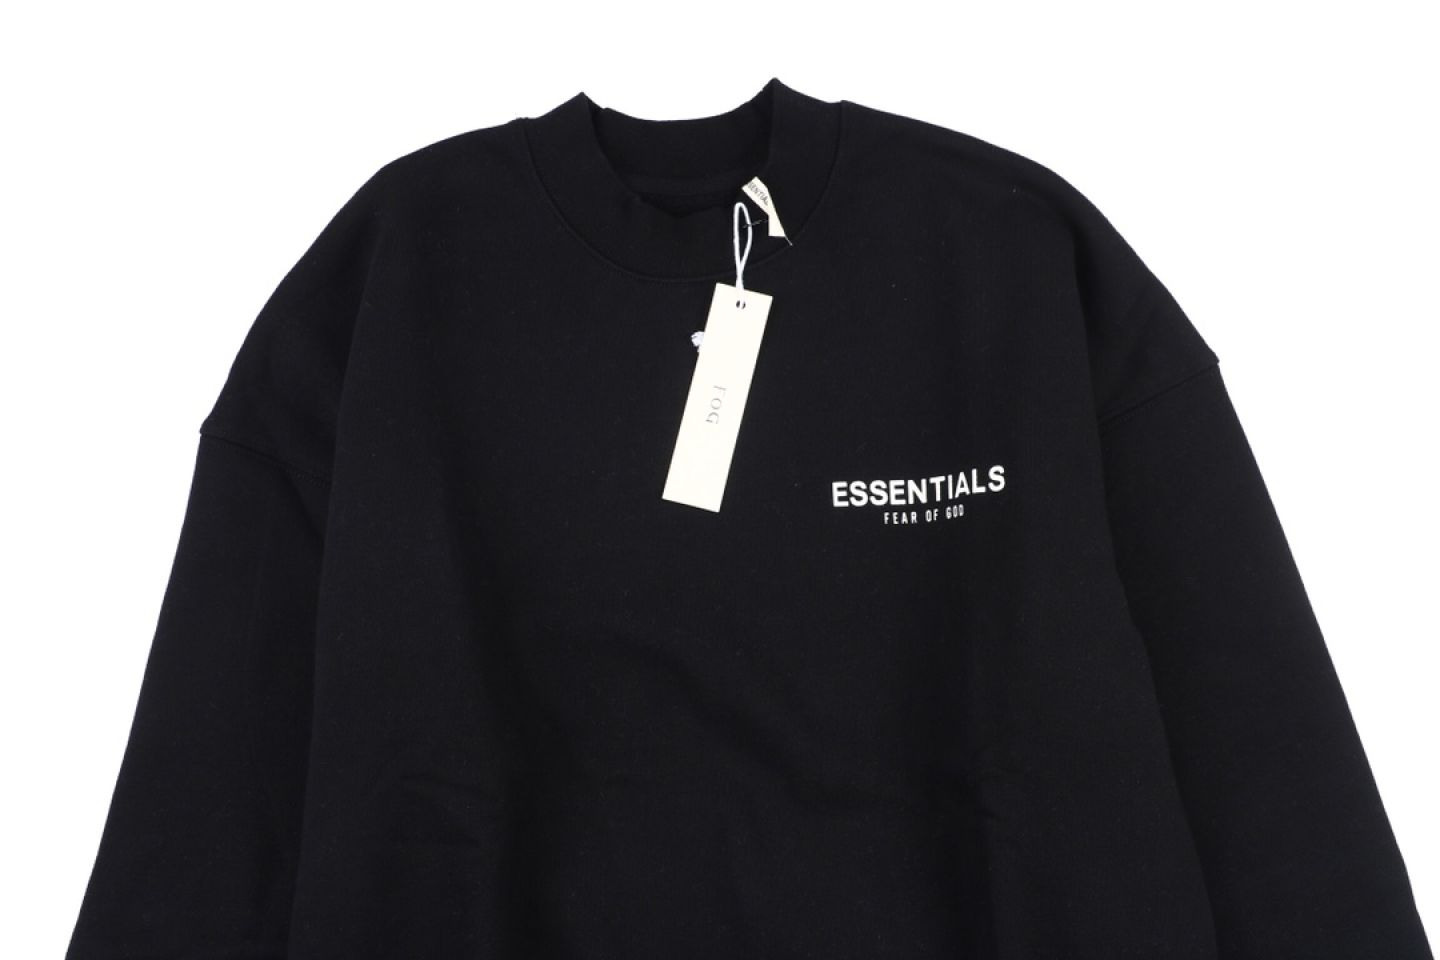 """Shirt Fear Of God Essential double line crew neck sweater """"Black"""" 2 fear_of_god_essential_double_line_crew_neck_sweater_black_2"""